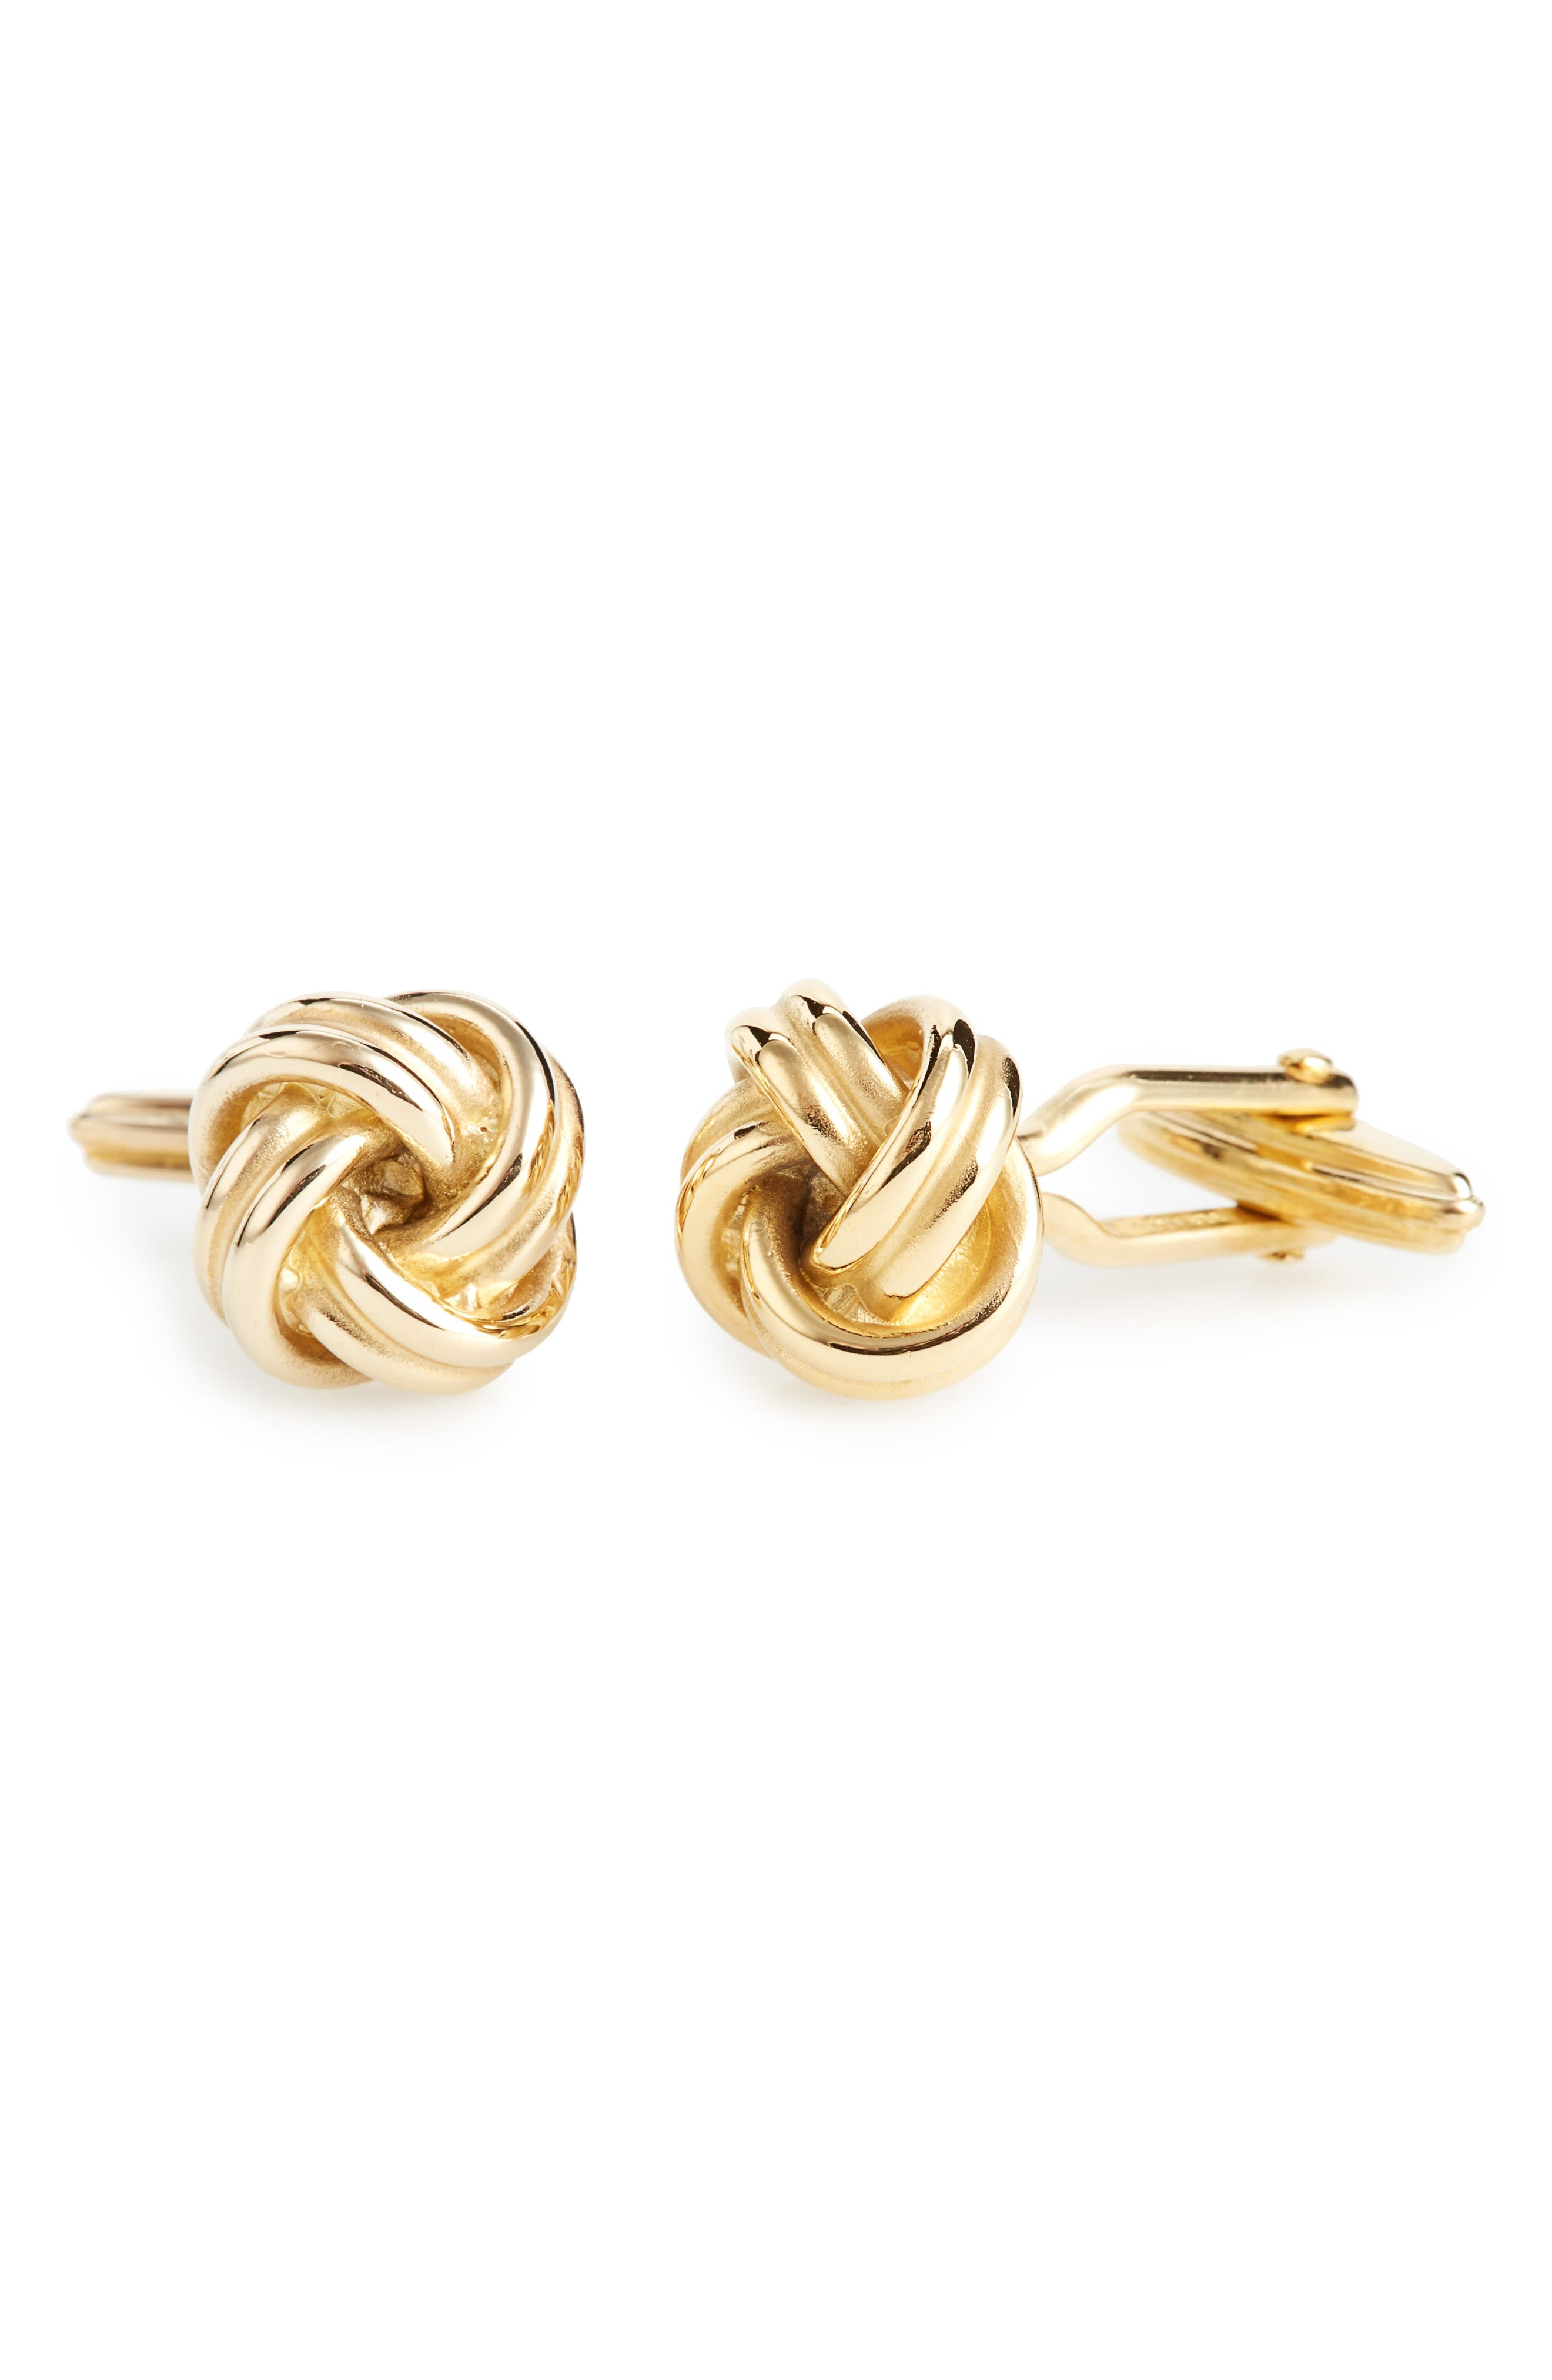 Knotted Cuff Links,                             Main thumbnail 1, color,